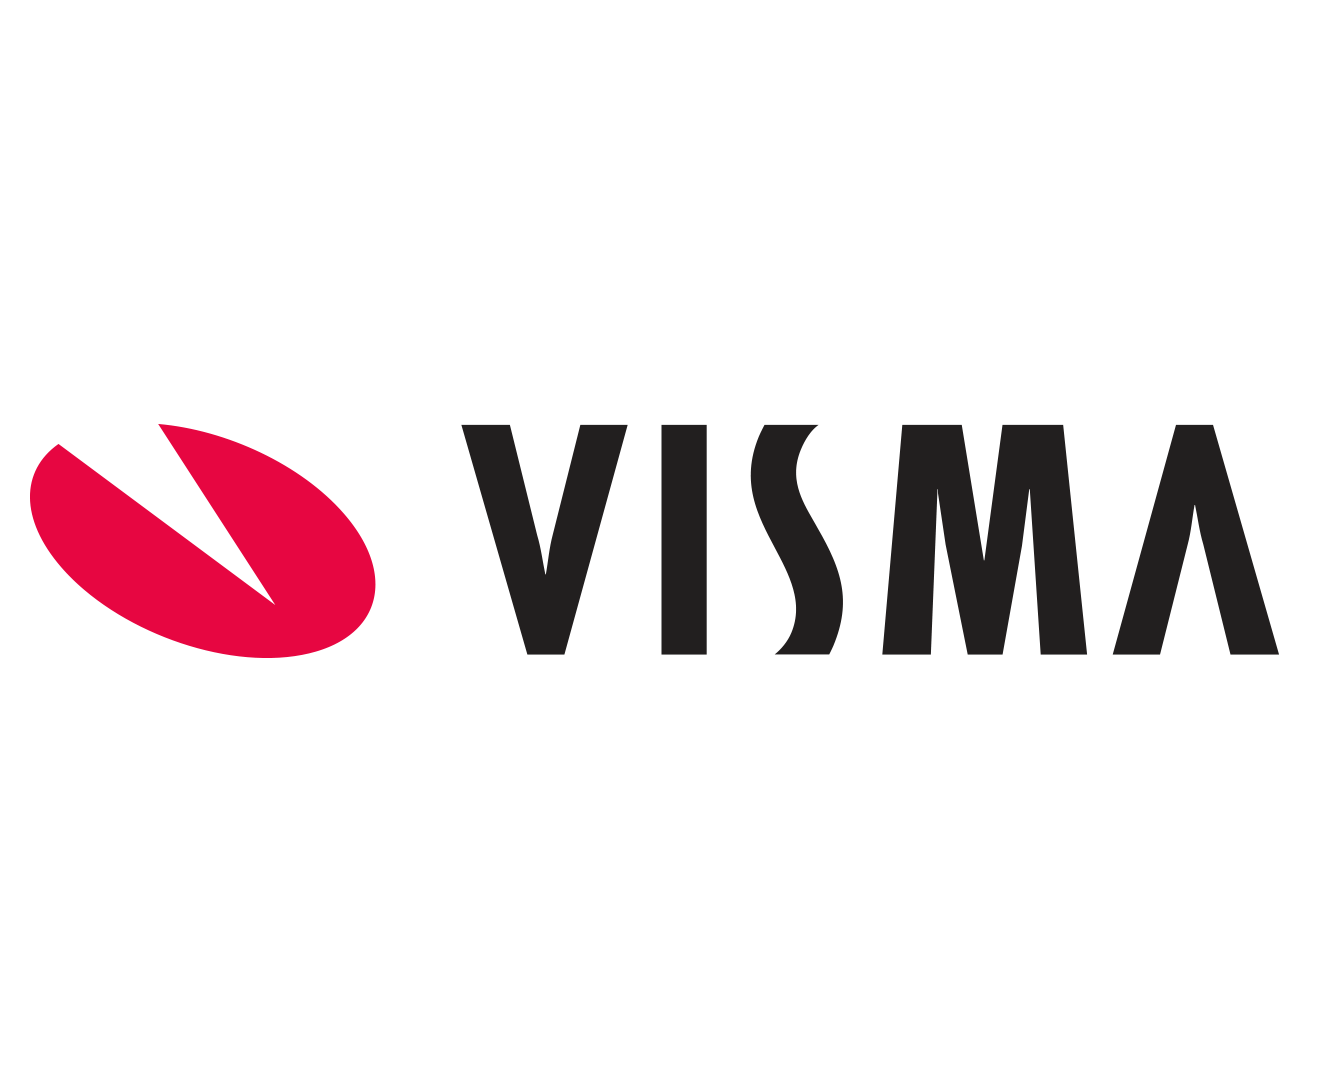 Visma: Summer Internship